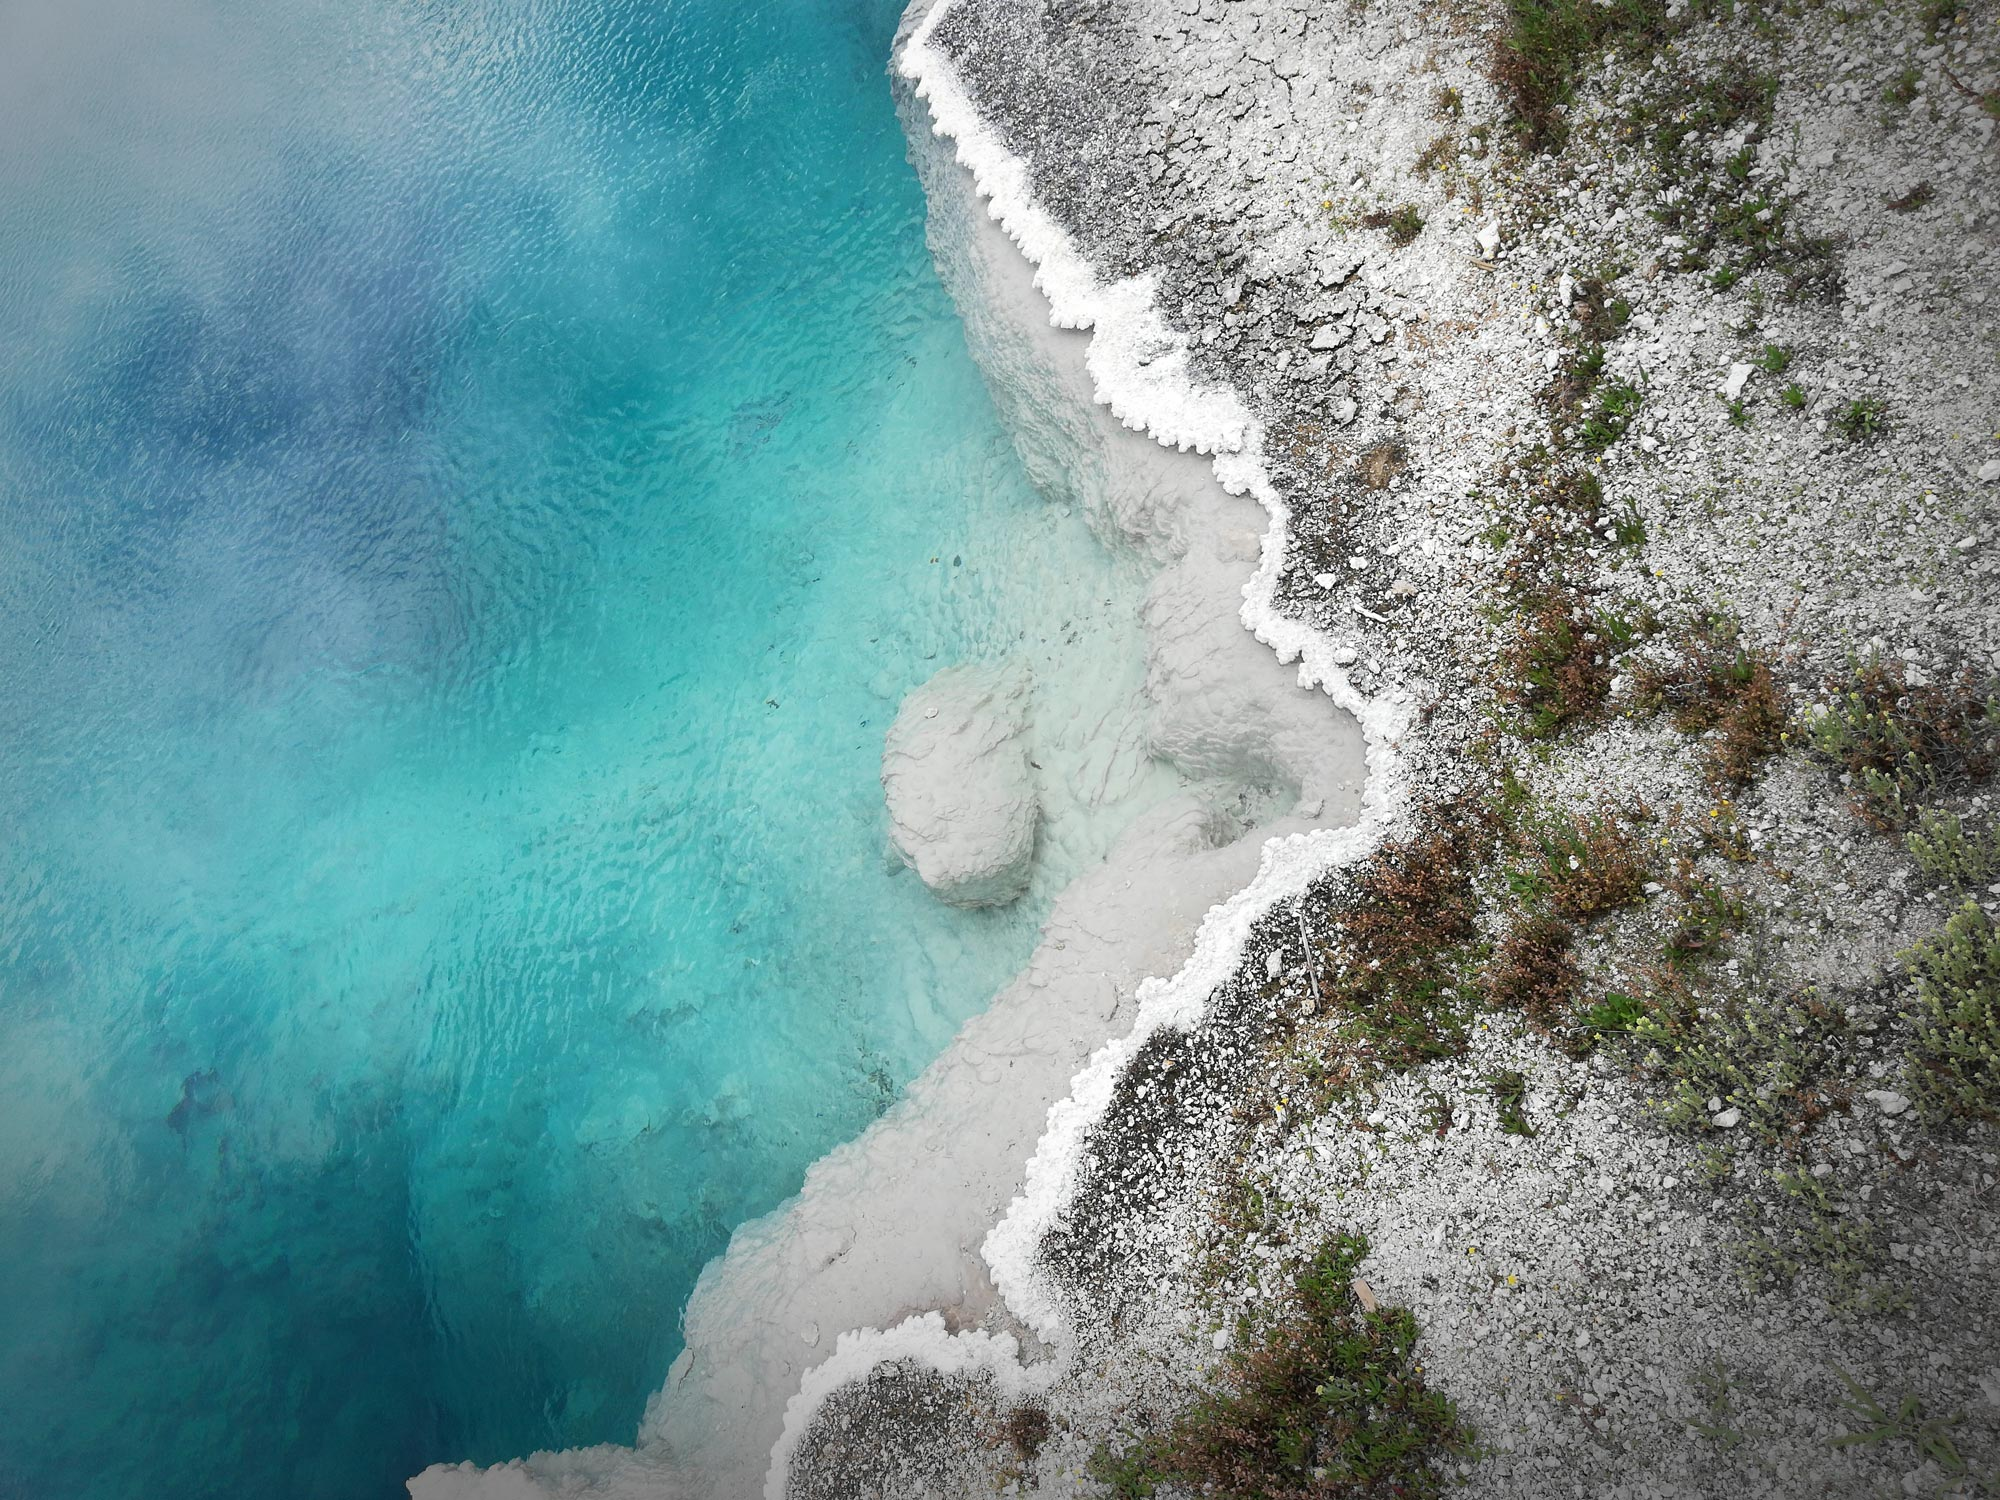 abyss pool at west thumb geyser basin in Yellowstone National Park